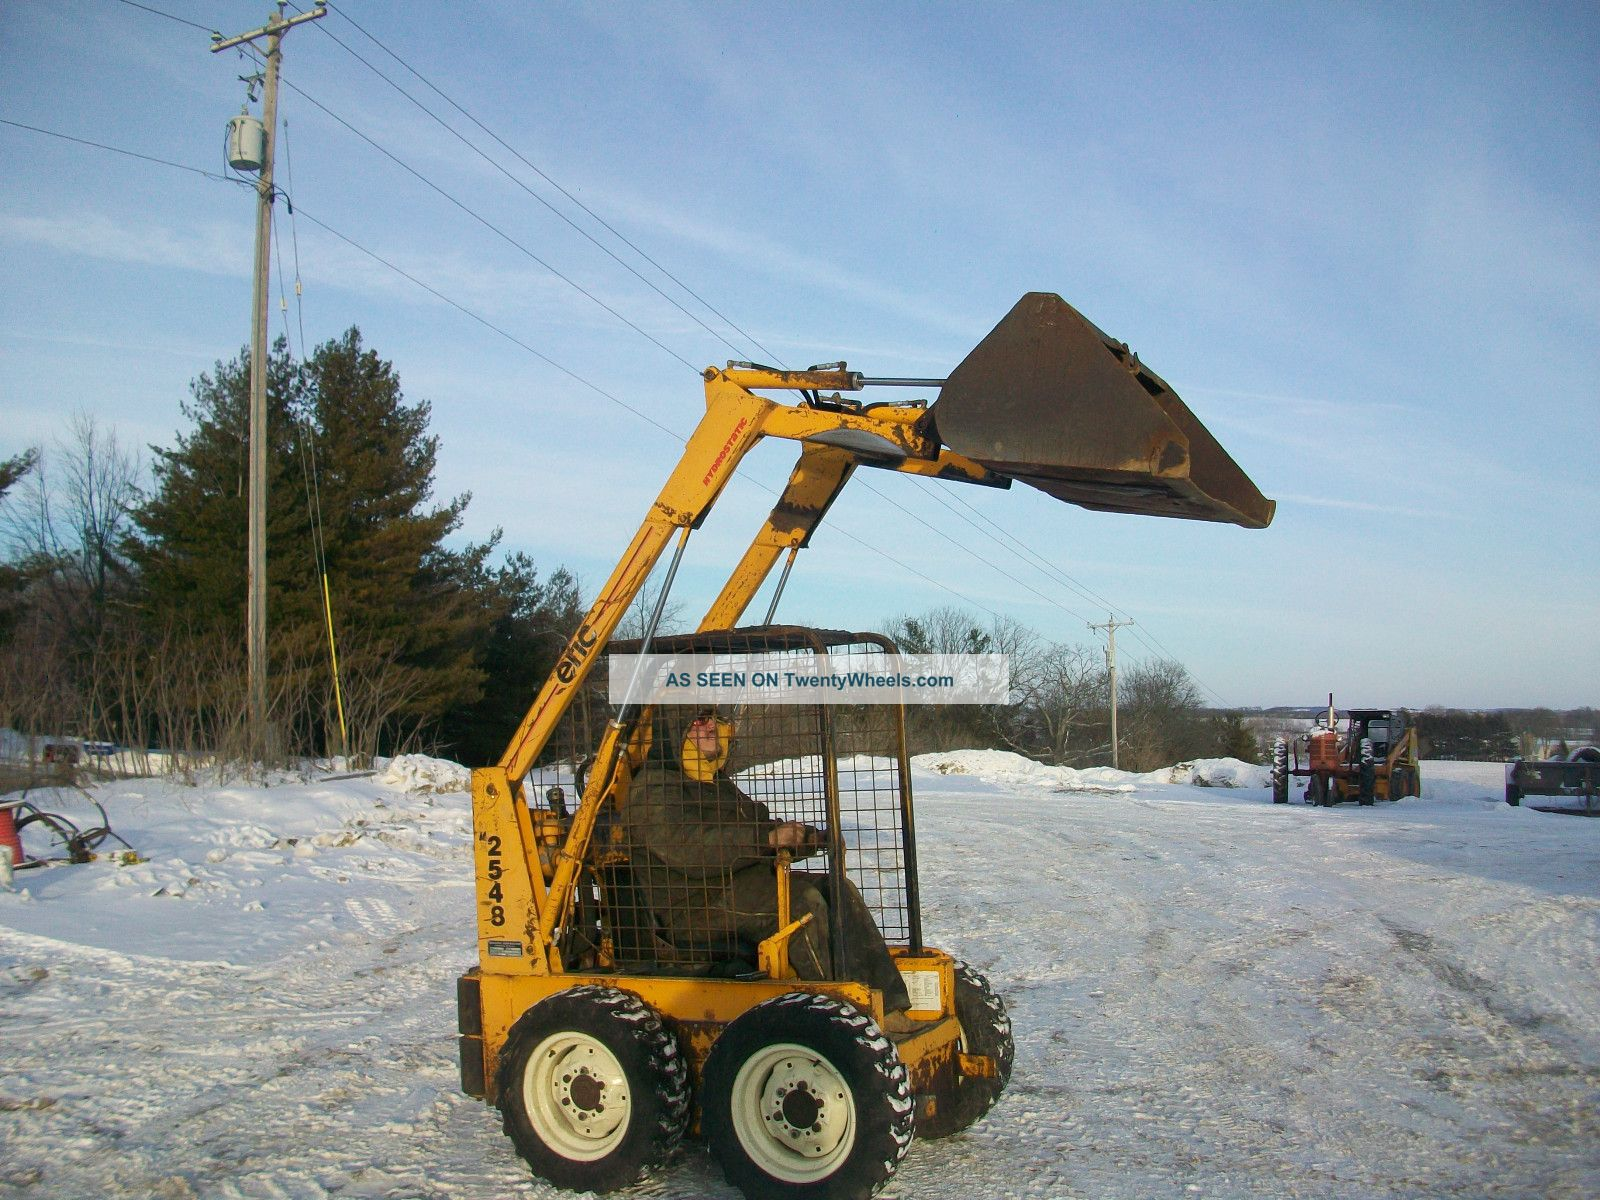 Ericson Model 2548 Skidloader Bobcat Skidsteer Gas Operates Great Skid Steer Loaders photo